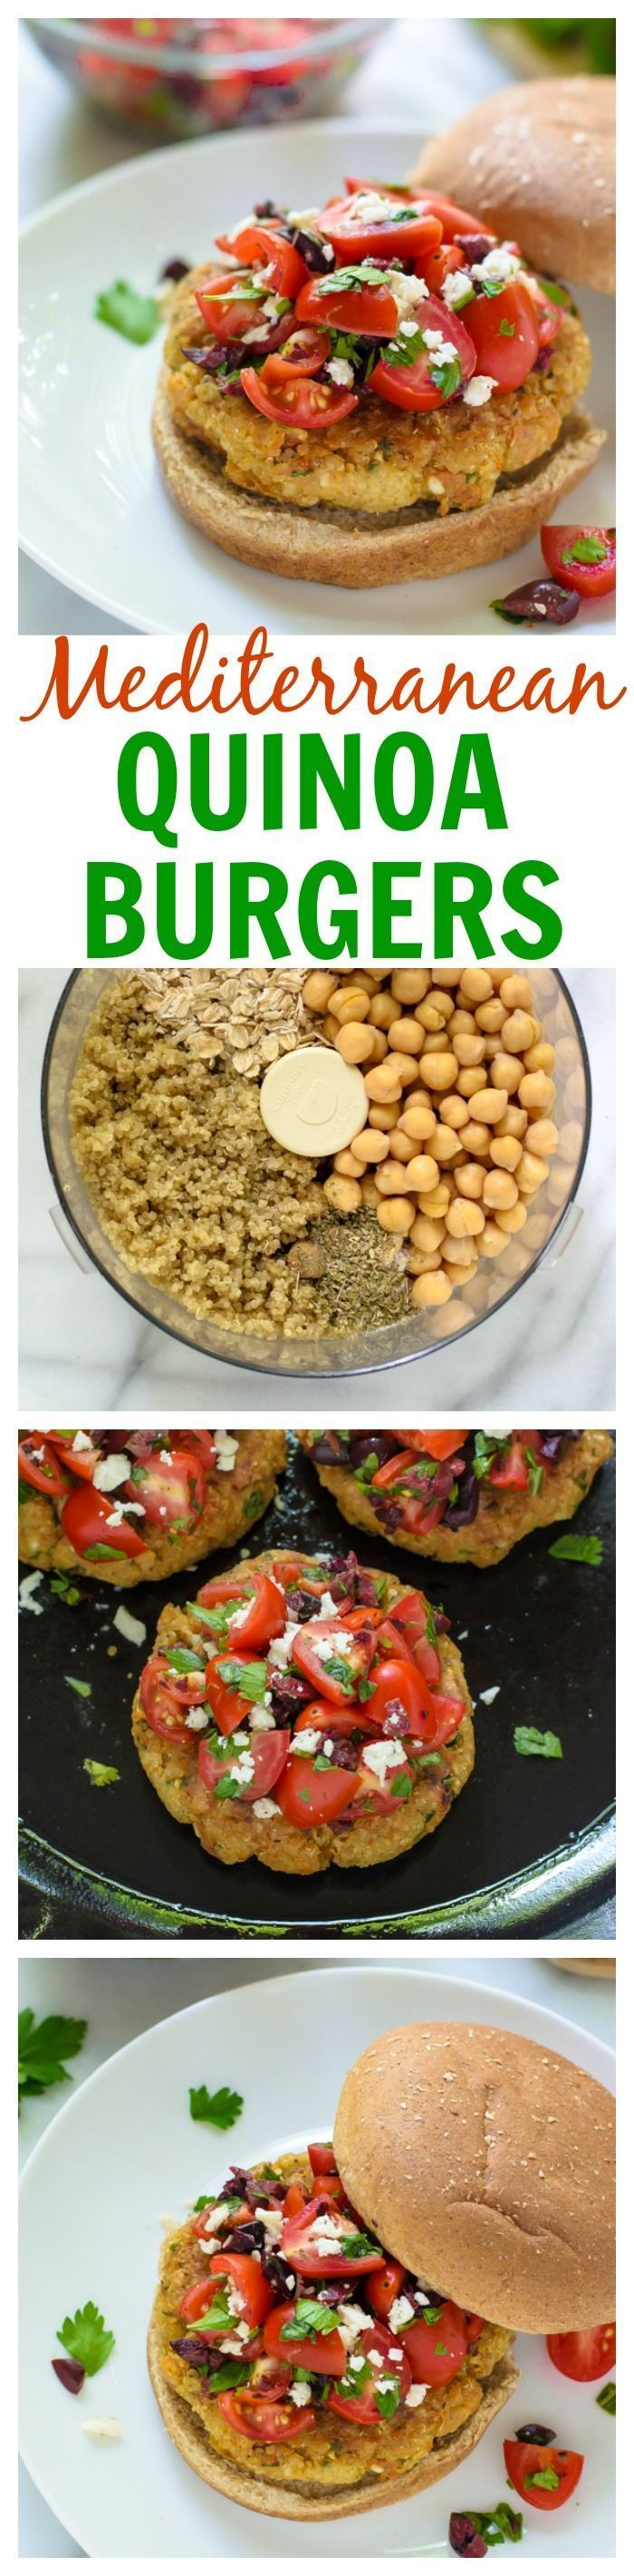 Feta Stuffed Mediterranean Quinoa Burgers. Crispy, fresh, and great leftover too! Great healthy dinner recipe for those  new year's resolutions!